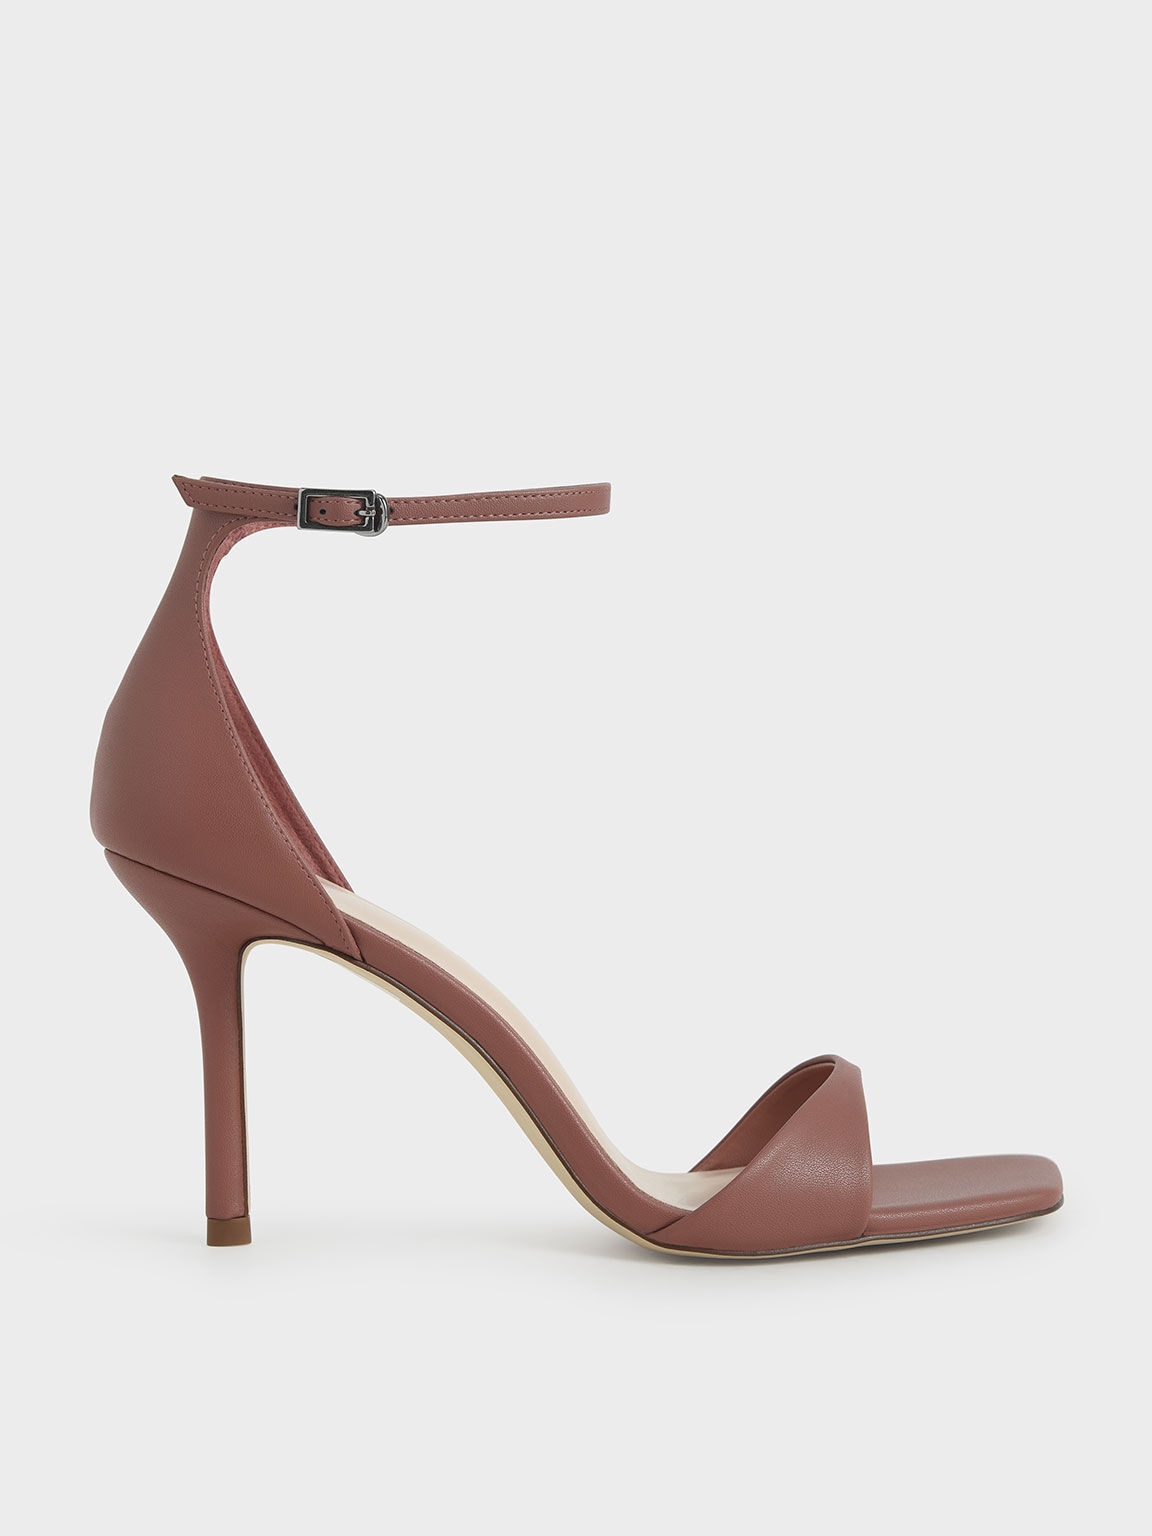 Ankle Strap Heeled Sandals, Brick, hi-res